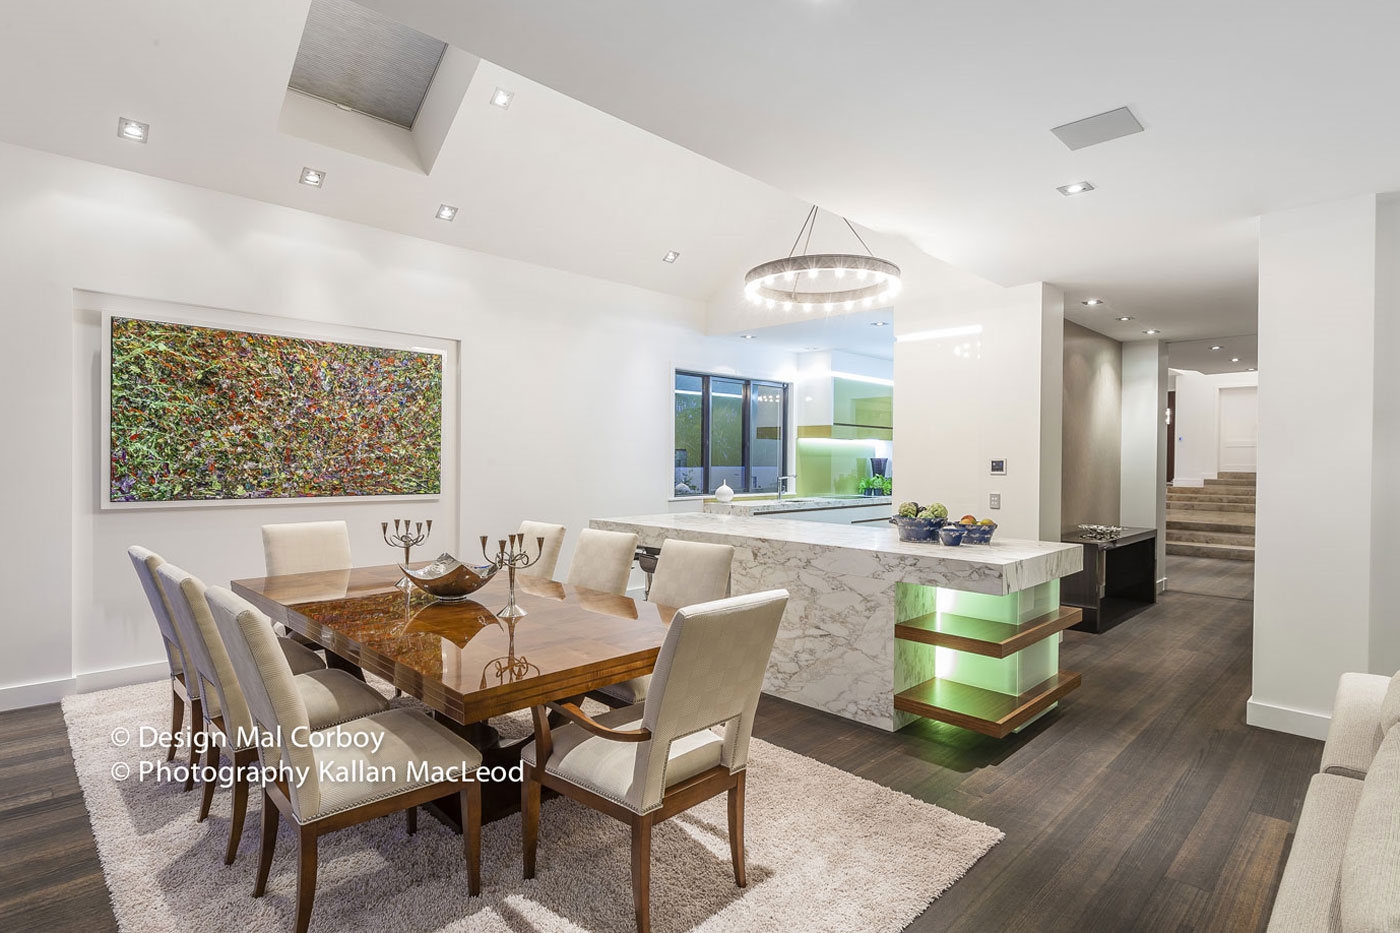 In This Initial Totally Free One Hour Consultation Youll Meet With Award Winning Interior Designer Mal Corboy To Learn More About The Design Process